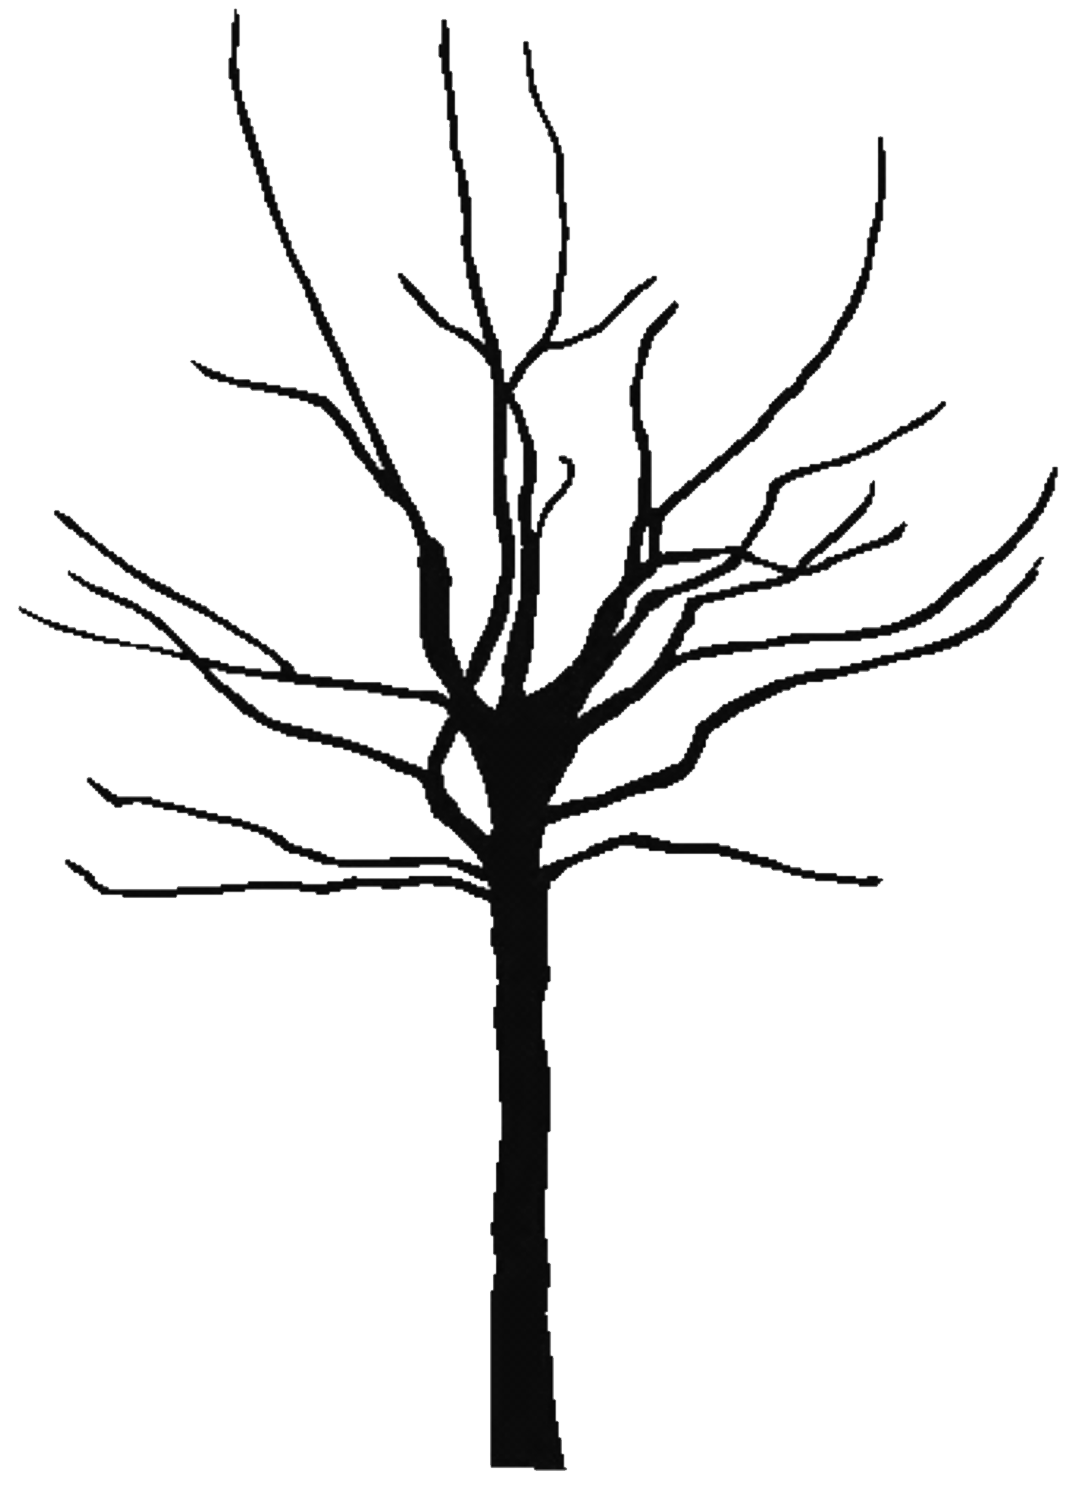 Bare Tree Coloring Page at GetDrawings.com | Free for ...